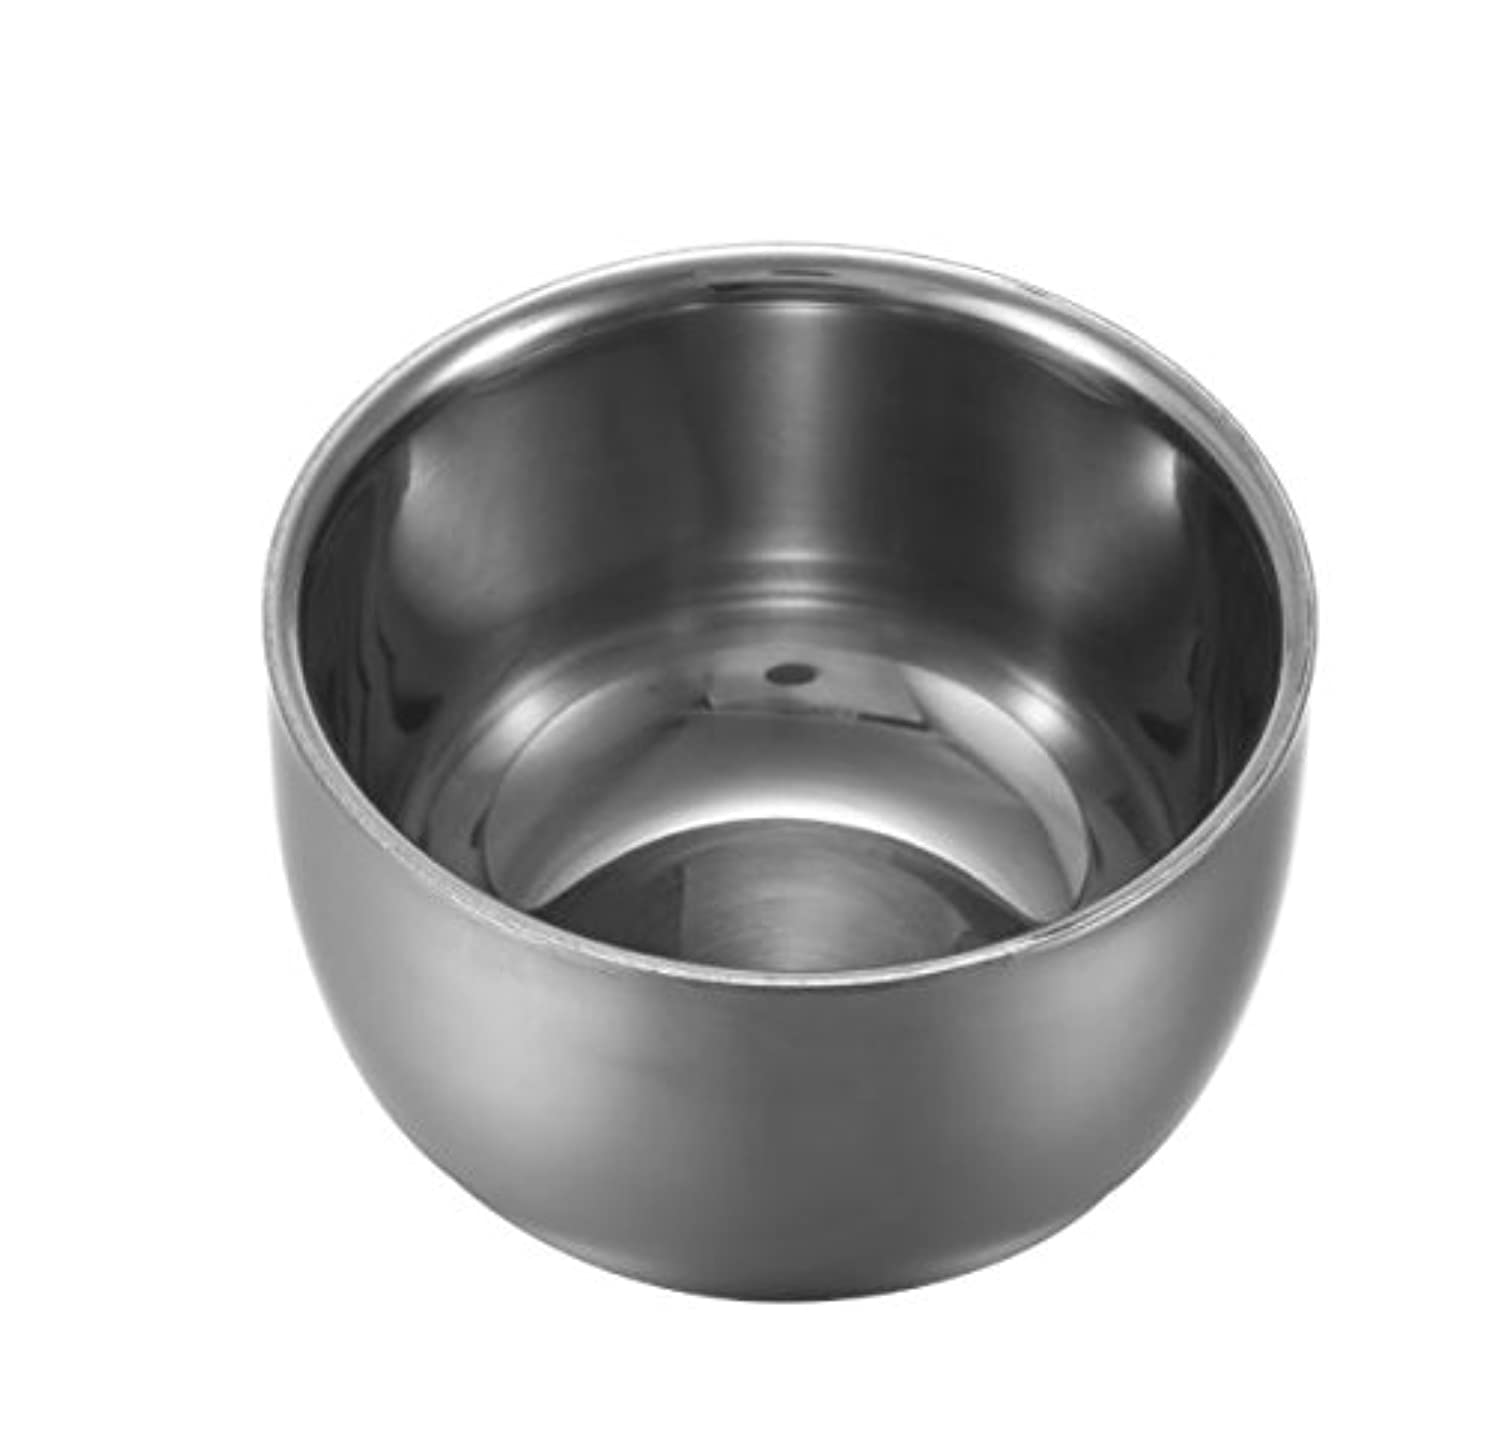 素晴らしいテントファントム7.5cm Stainless Steel Shaving Bowl Barber Beard Razor Cup For Shave Brush Male Face Cleaning Soap Mug Tool